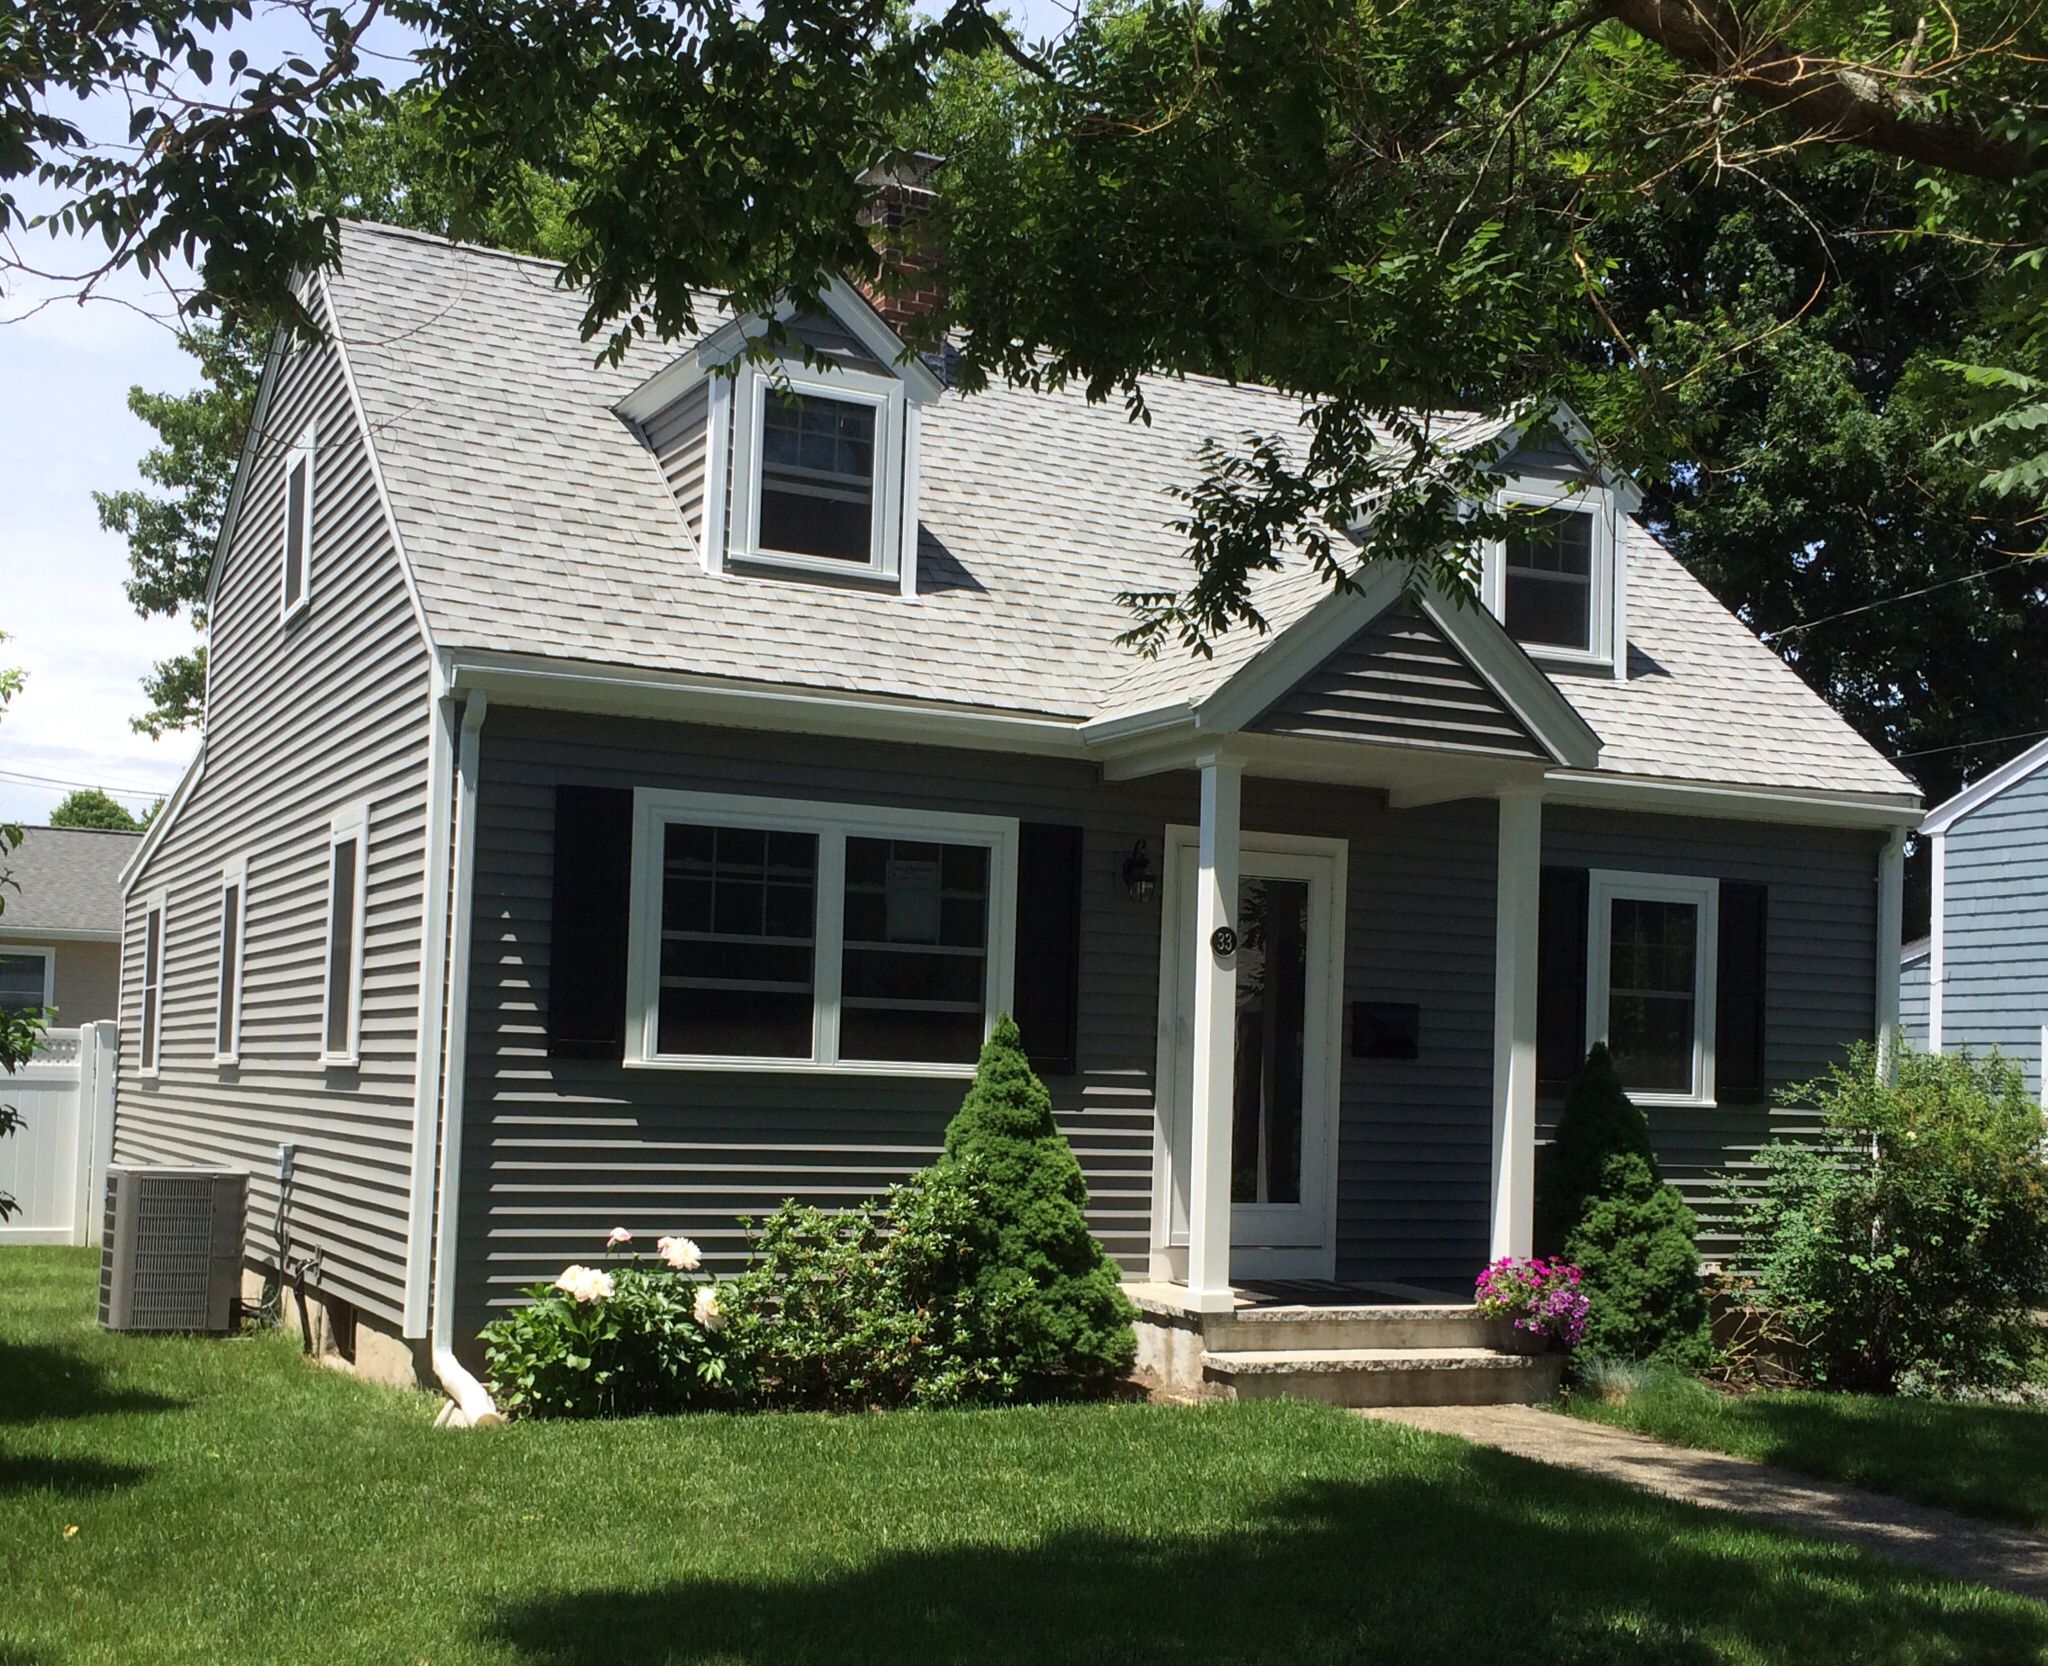 Certainteed Corporation Siding In Charcoal Gray And Harvey Building Products Windows Complete This Remodel